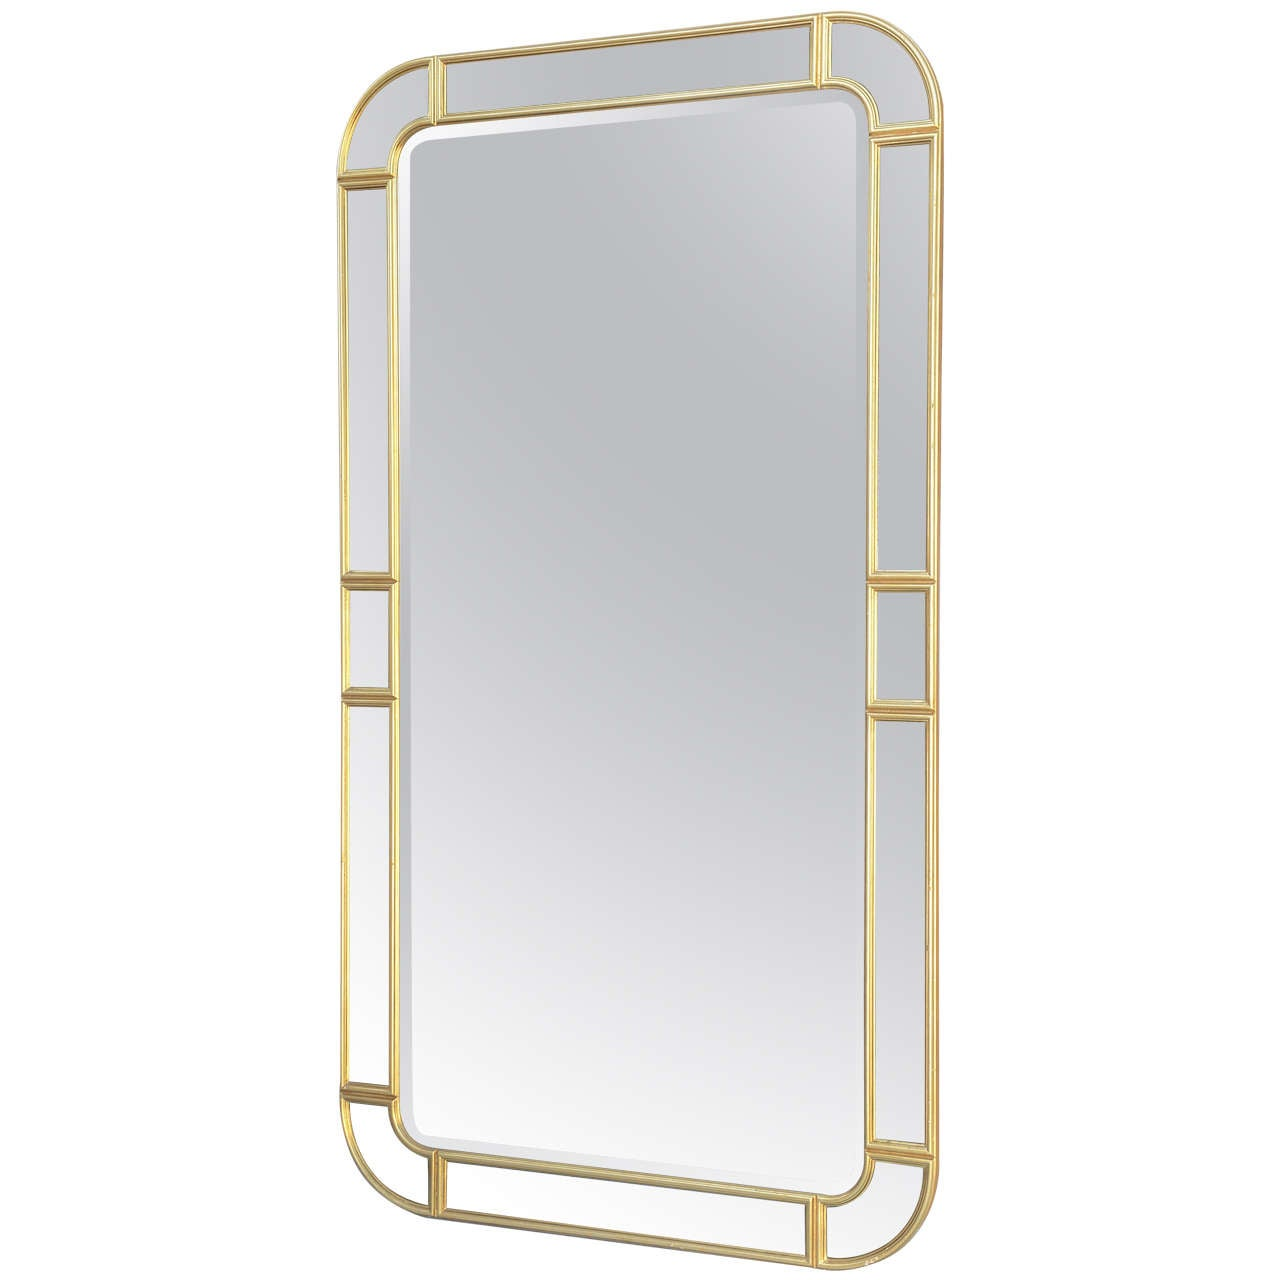 Oversized giltwood mirror with mirrored relief border for for Oversized mirror